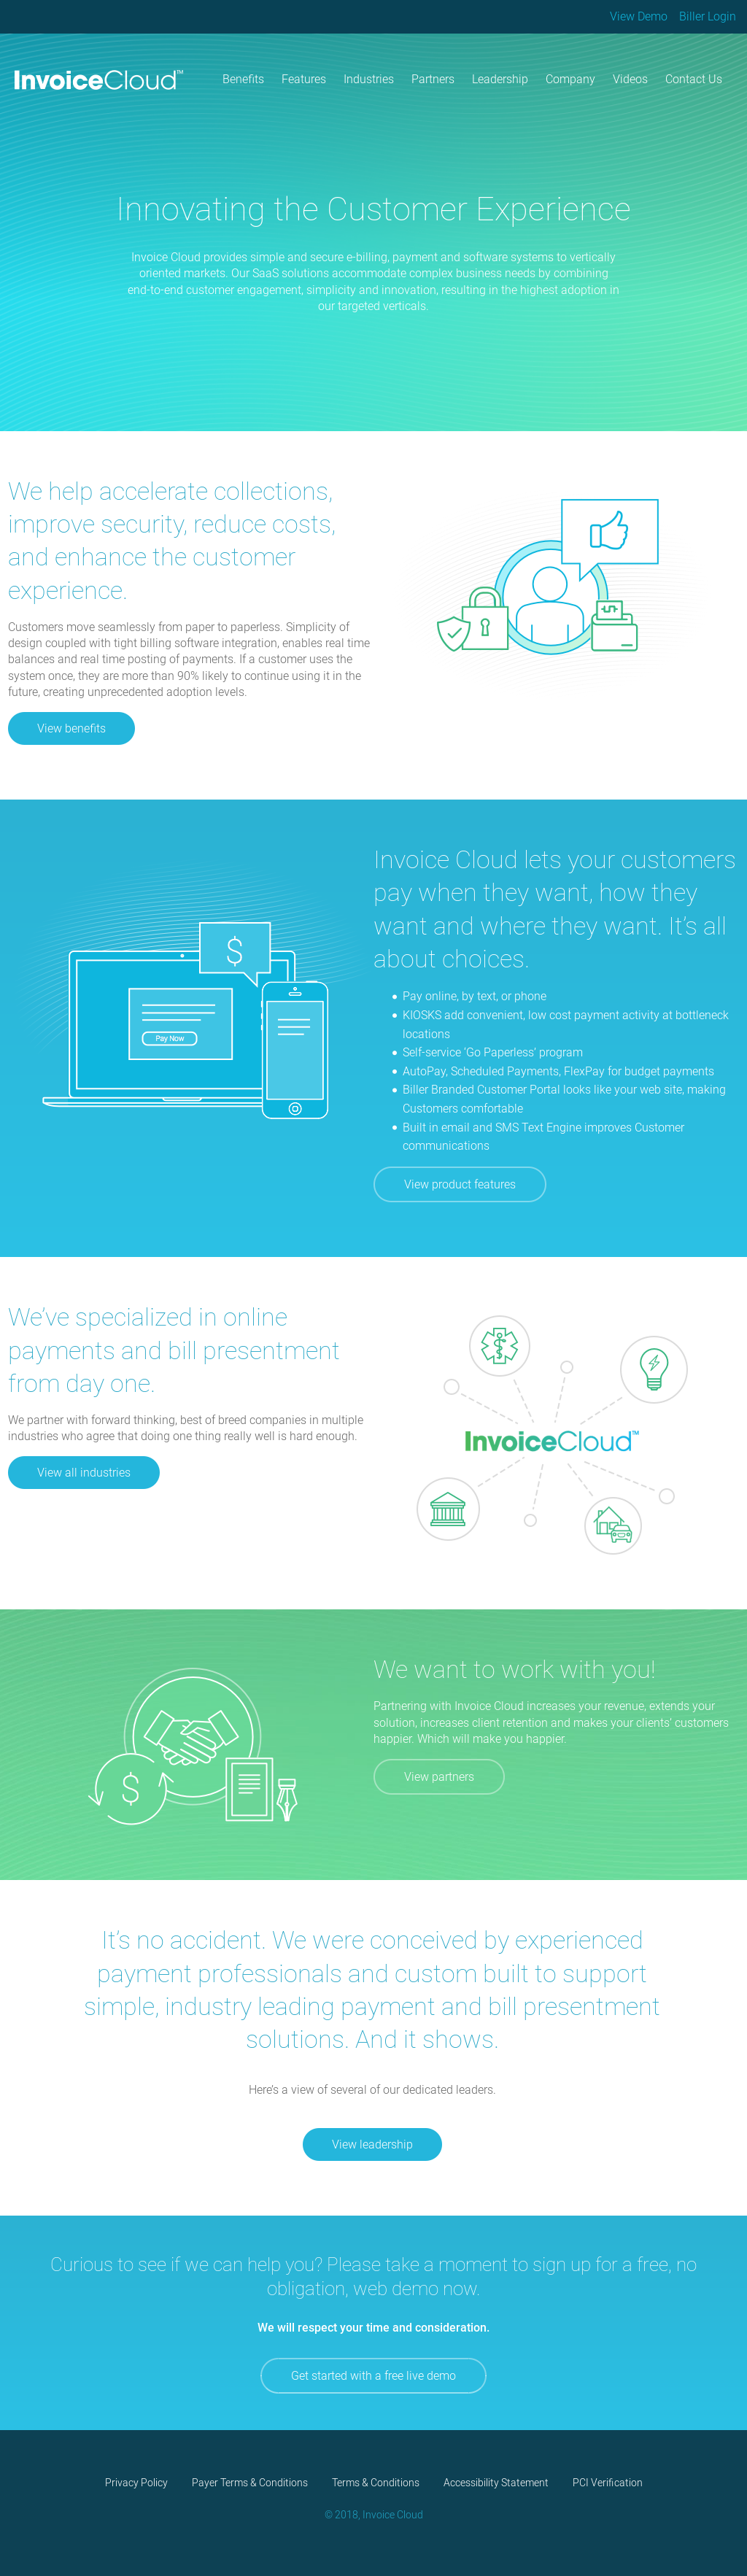 Invoice Cloud Competitors Revenue And Employees Owler Company Profile - Invoice cloud